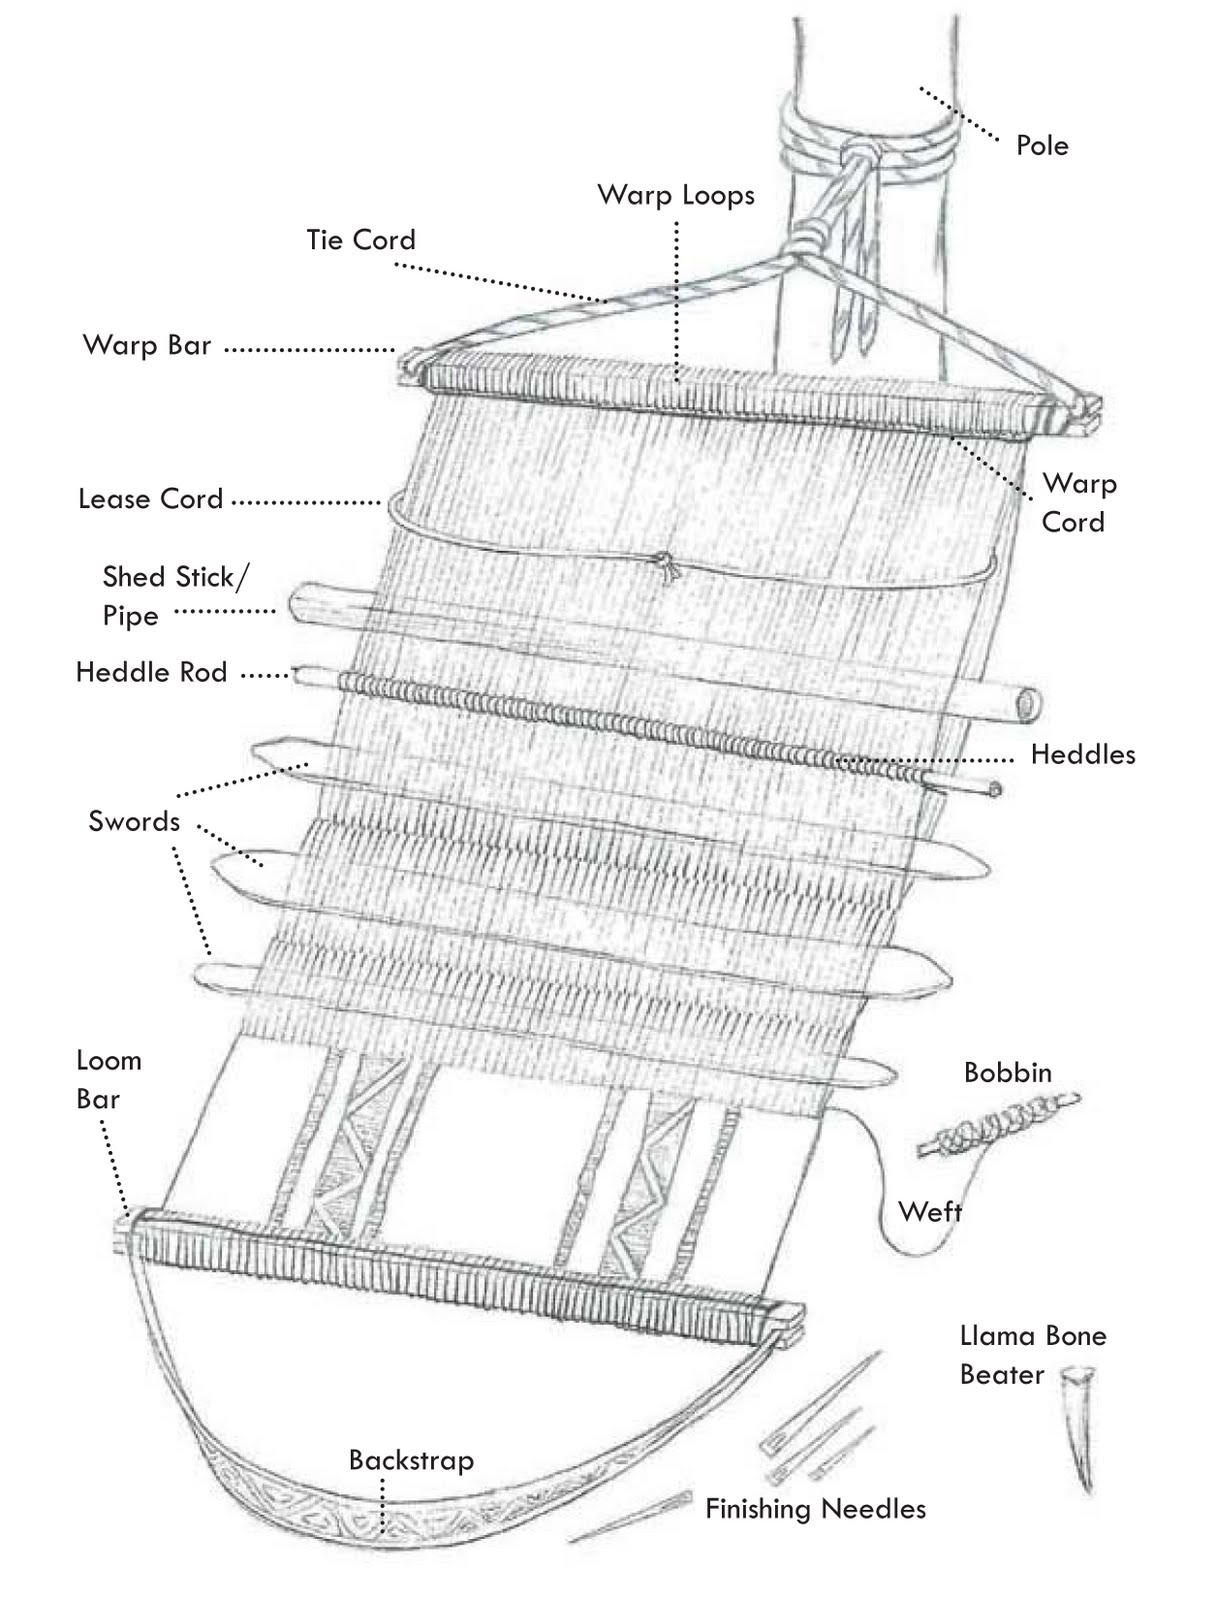 Diagram Of Weaving Loom Tail Light Velo Saddle A Different Space Discontinuous Warps For Warp Faced